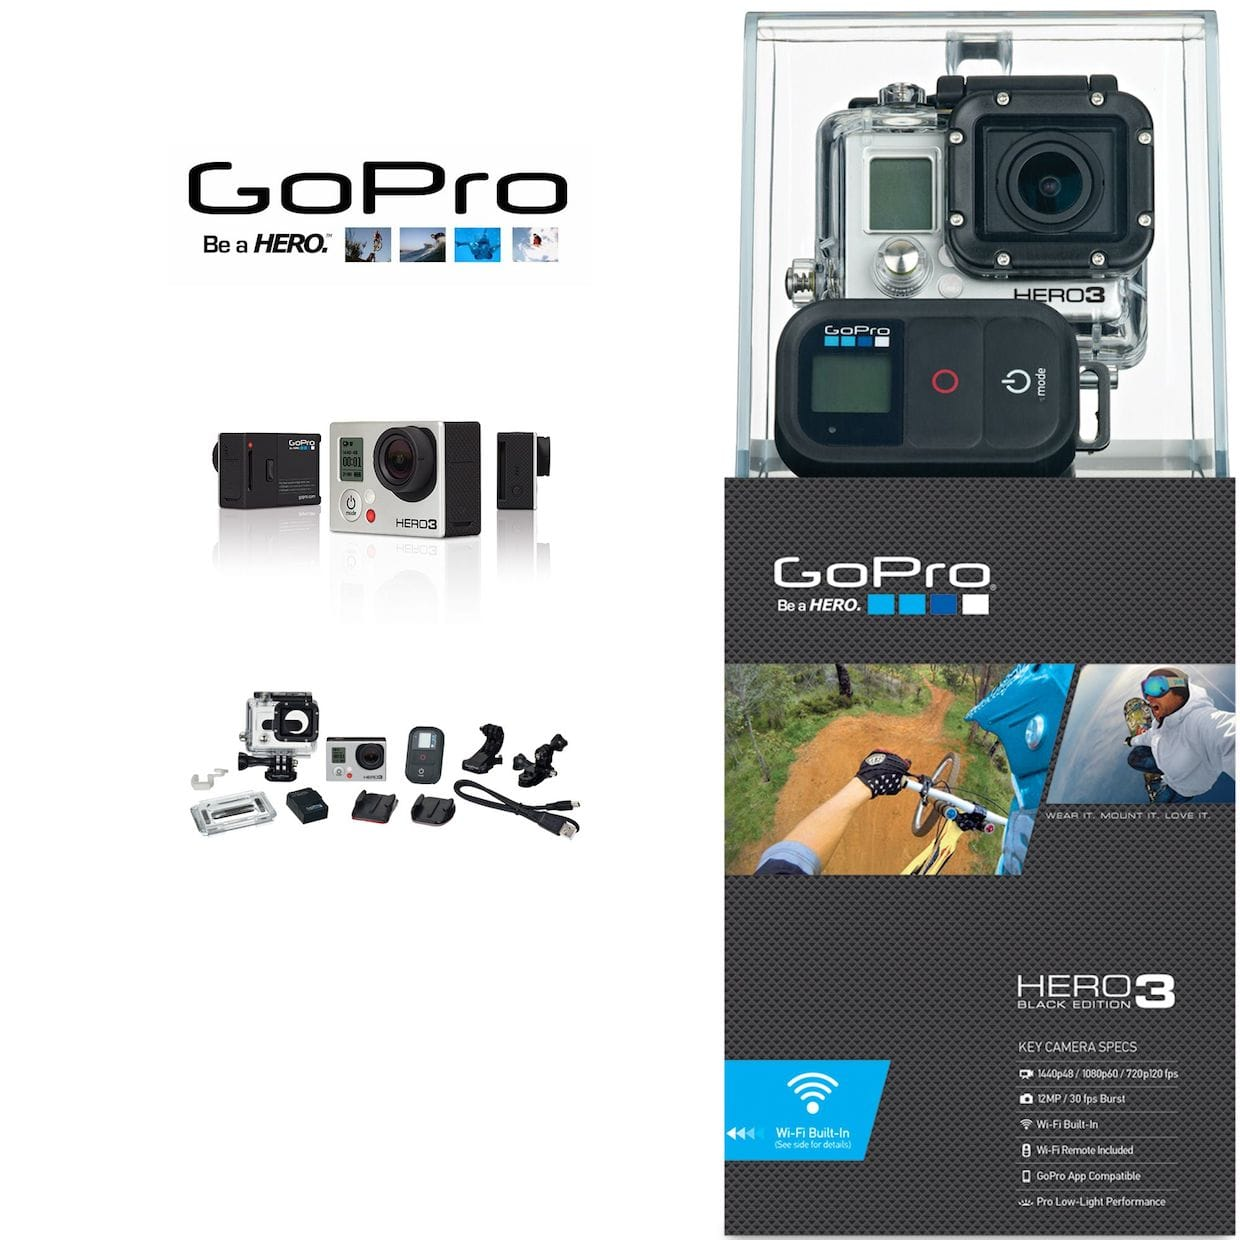 recenzja gopro hero 3 black edition wideo imagazine. Black Bedroom Furniture Sets. Home Design Ideas